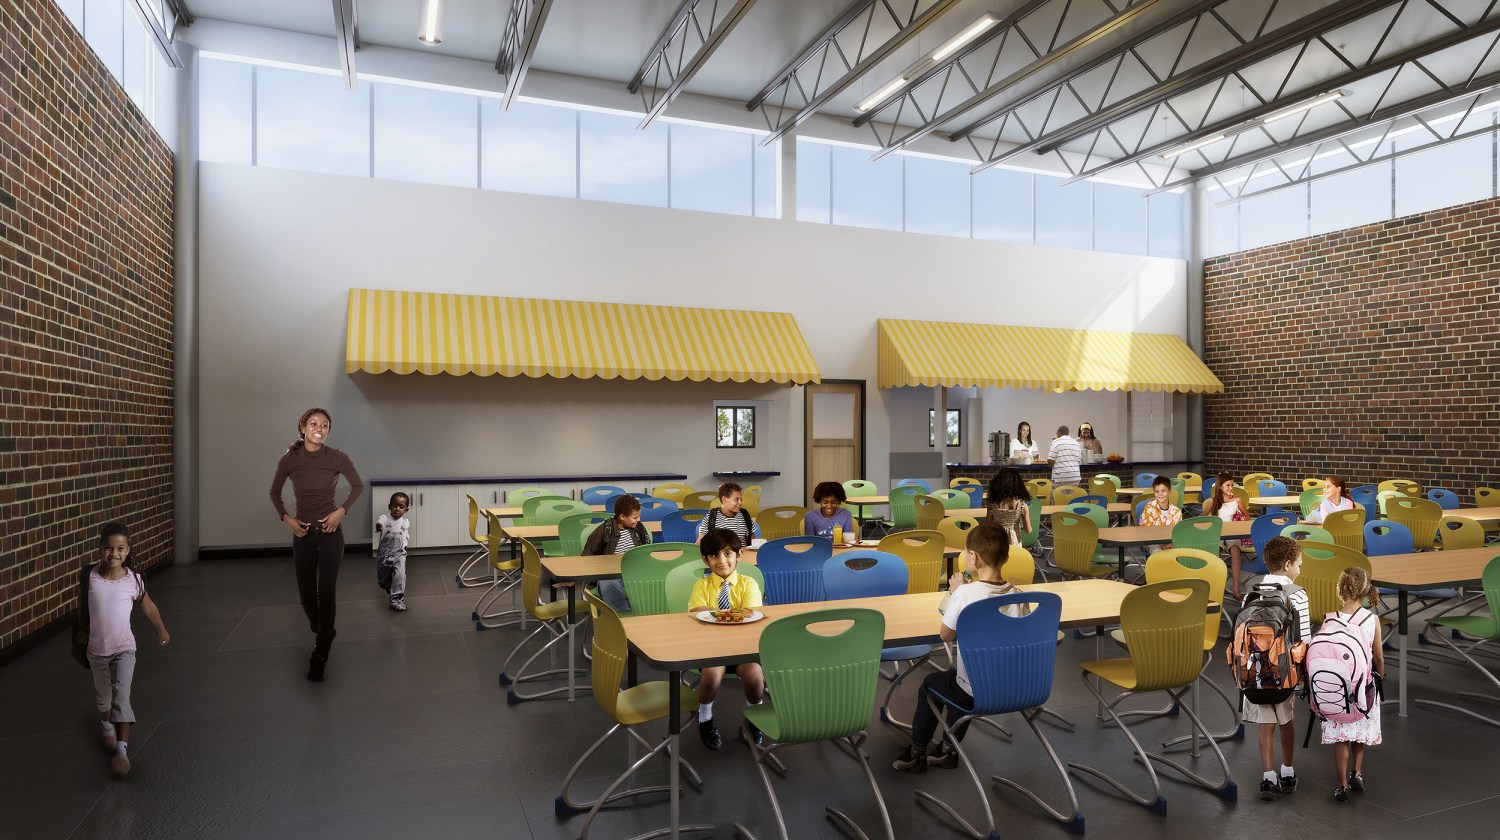 Youth Development Center - Cafeteria